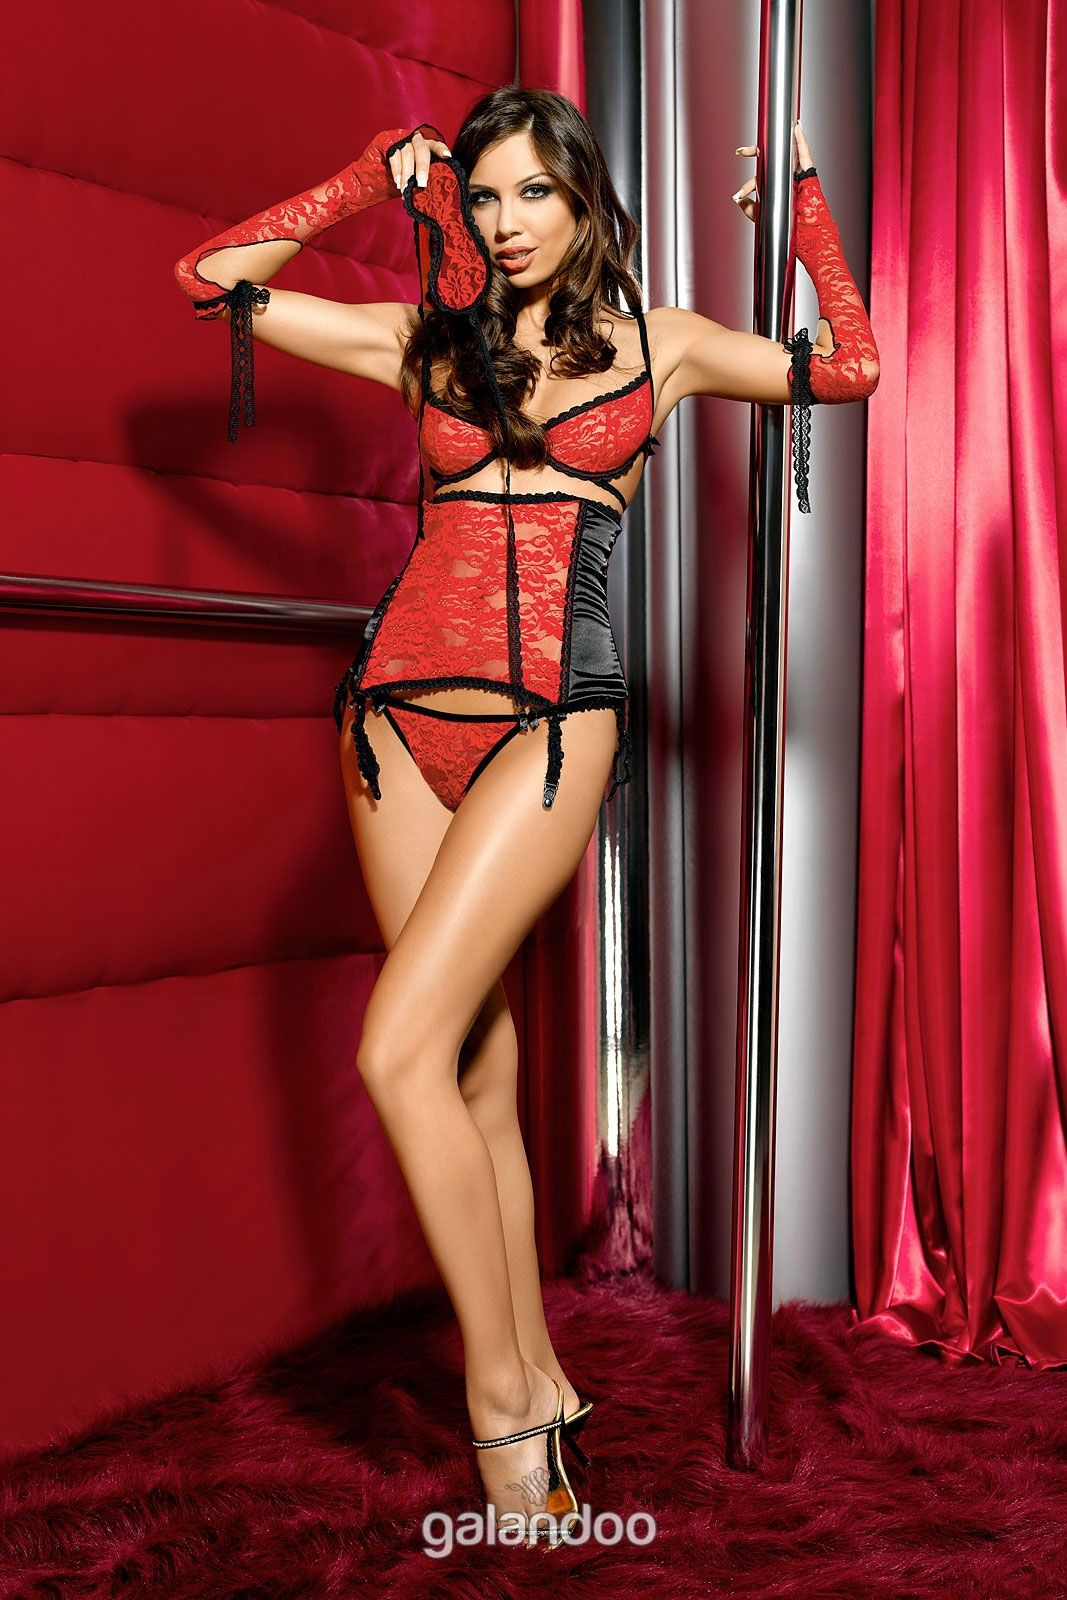 MARCY SET Brand: ANAIS This sensuous lingerie with its ...